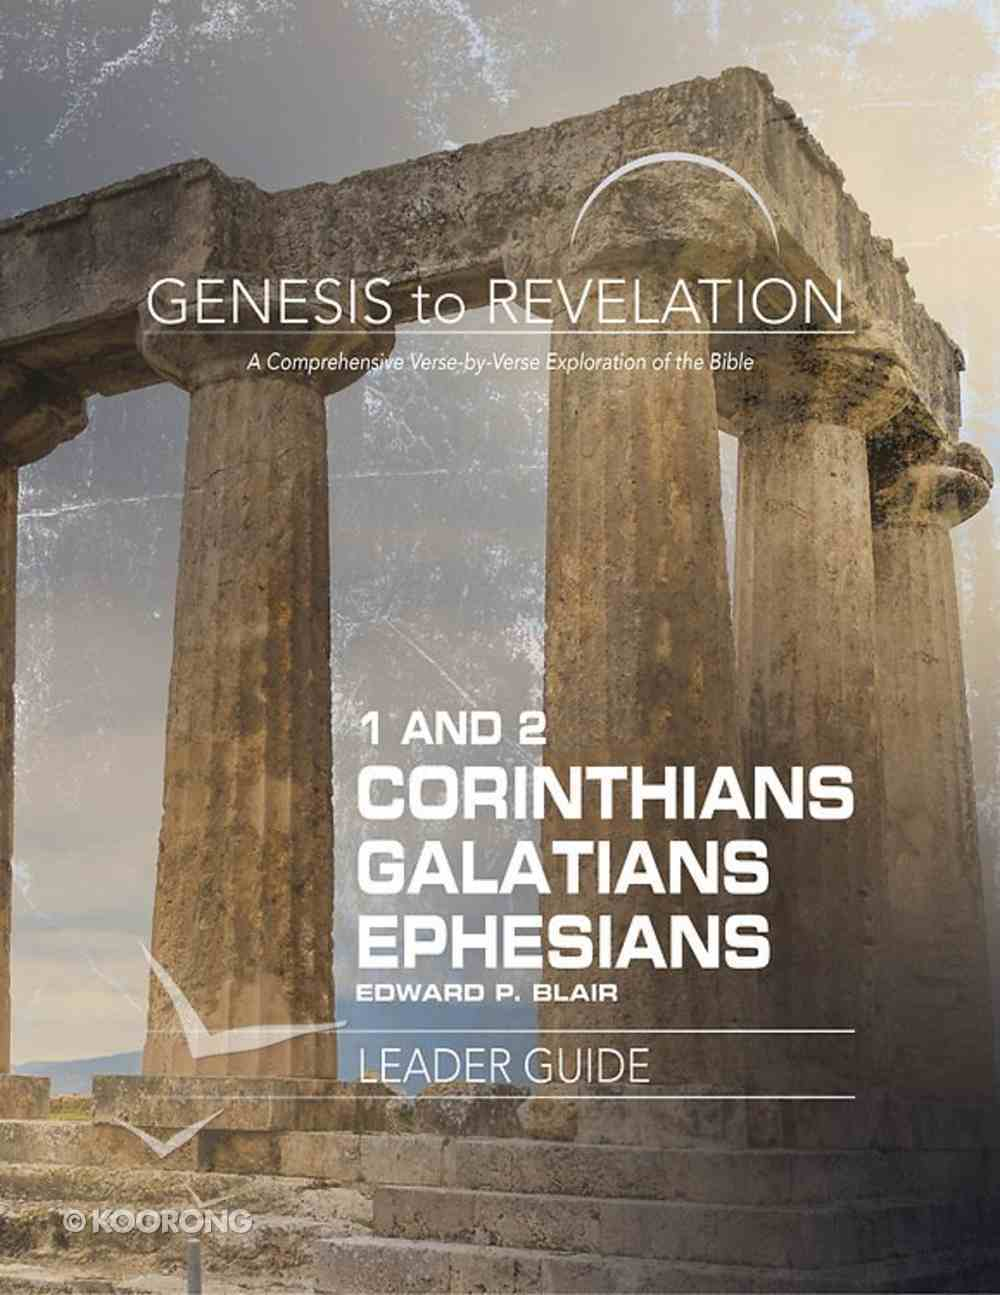 1&2 Corinthians, Galatians, Ephesians : A Comprehensive Verse-By-Verse Exploration of the Bible (Leader Guide) (Genesis To Revelation Series) eBook